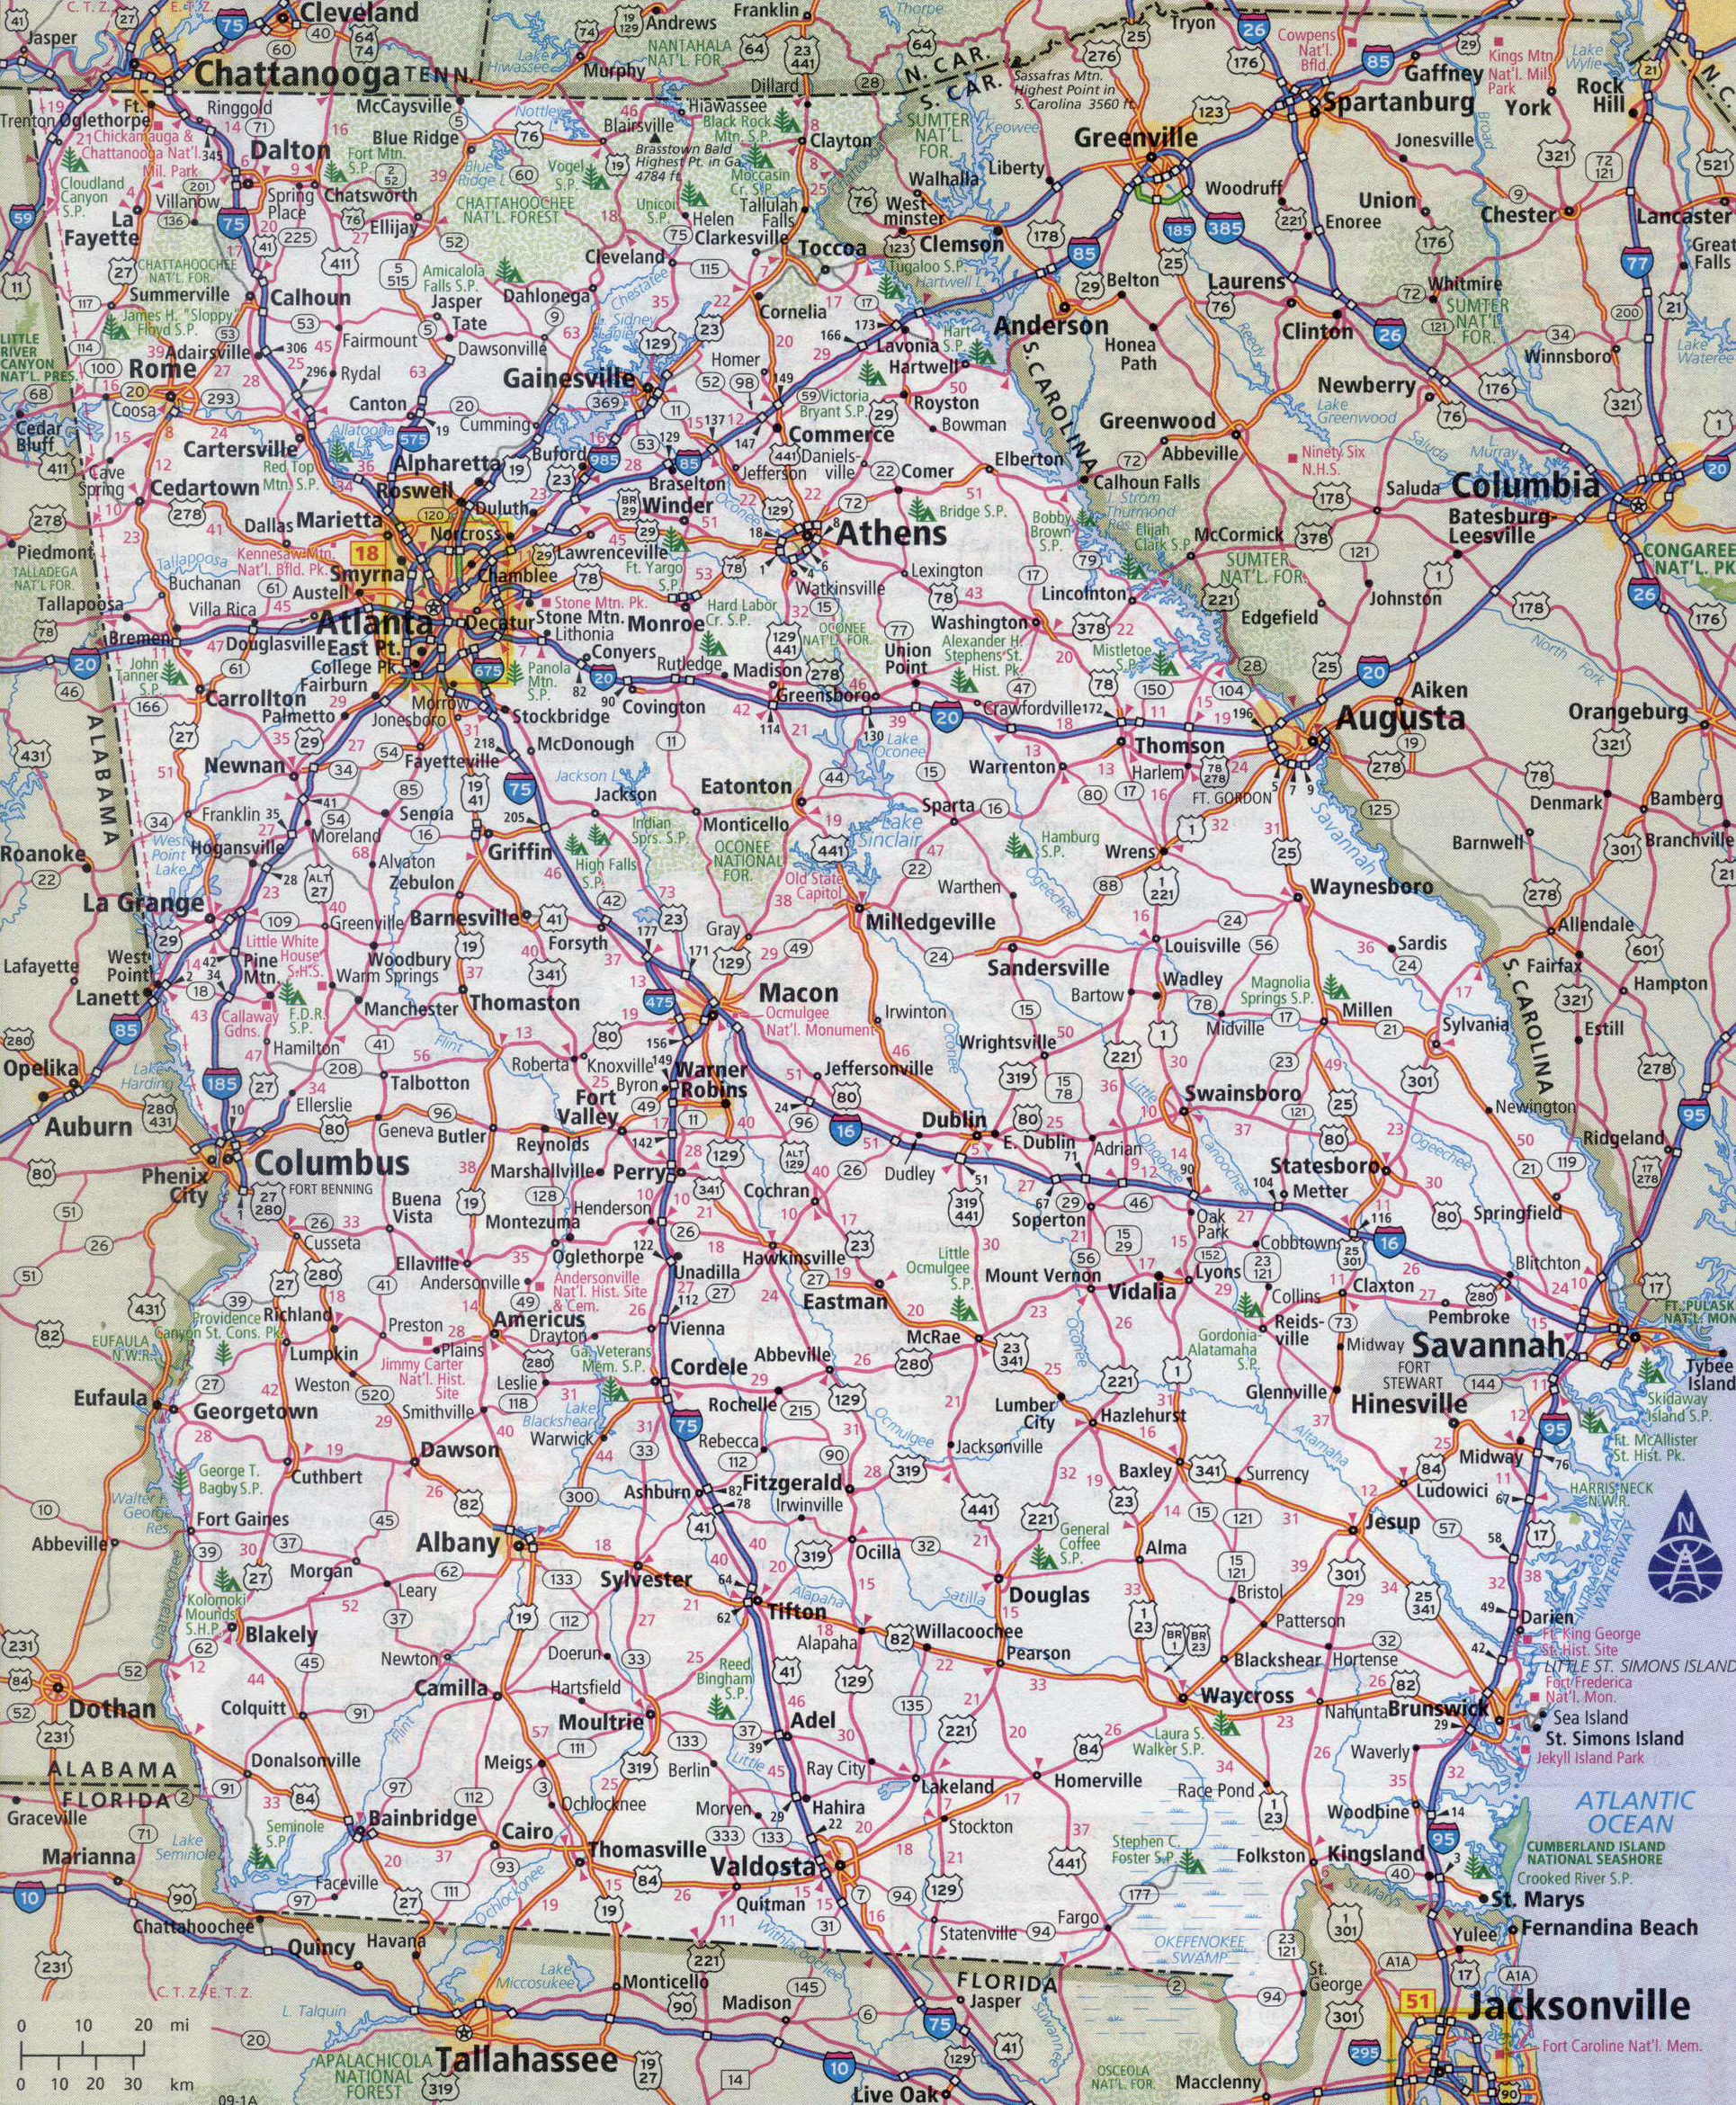 Large detailed roads and highways map of Georgia state with ... on printable georgia map with cities, georgia state on a map, georgia state flower, just map of georgia cities, map of georgia showing cities, state of georgia cities, western kentucky map with cities, ga road maps with cities, map of southern georgia cities, maine map with cities, ga maps by county with cities, detailed map of georgia cities, georgia state map online, map of georgia with cities, map of georgia and alabama cities, florida map with cities, south carolina and georgia map with cities, georgia state highway map, georgia-florida map showing cities, georgia map cities ga,